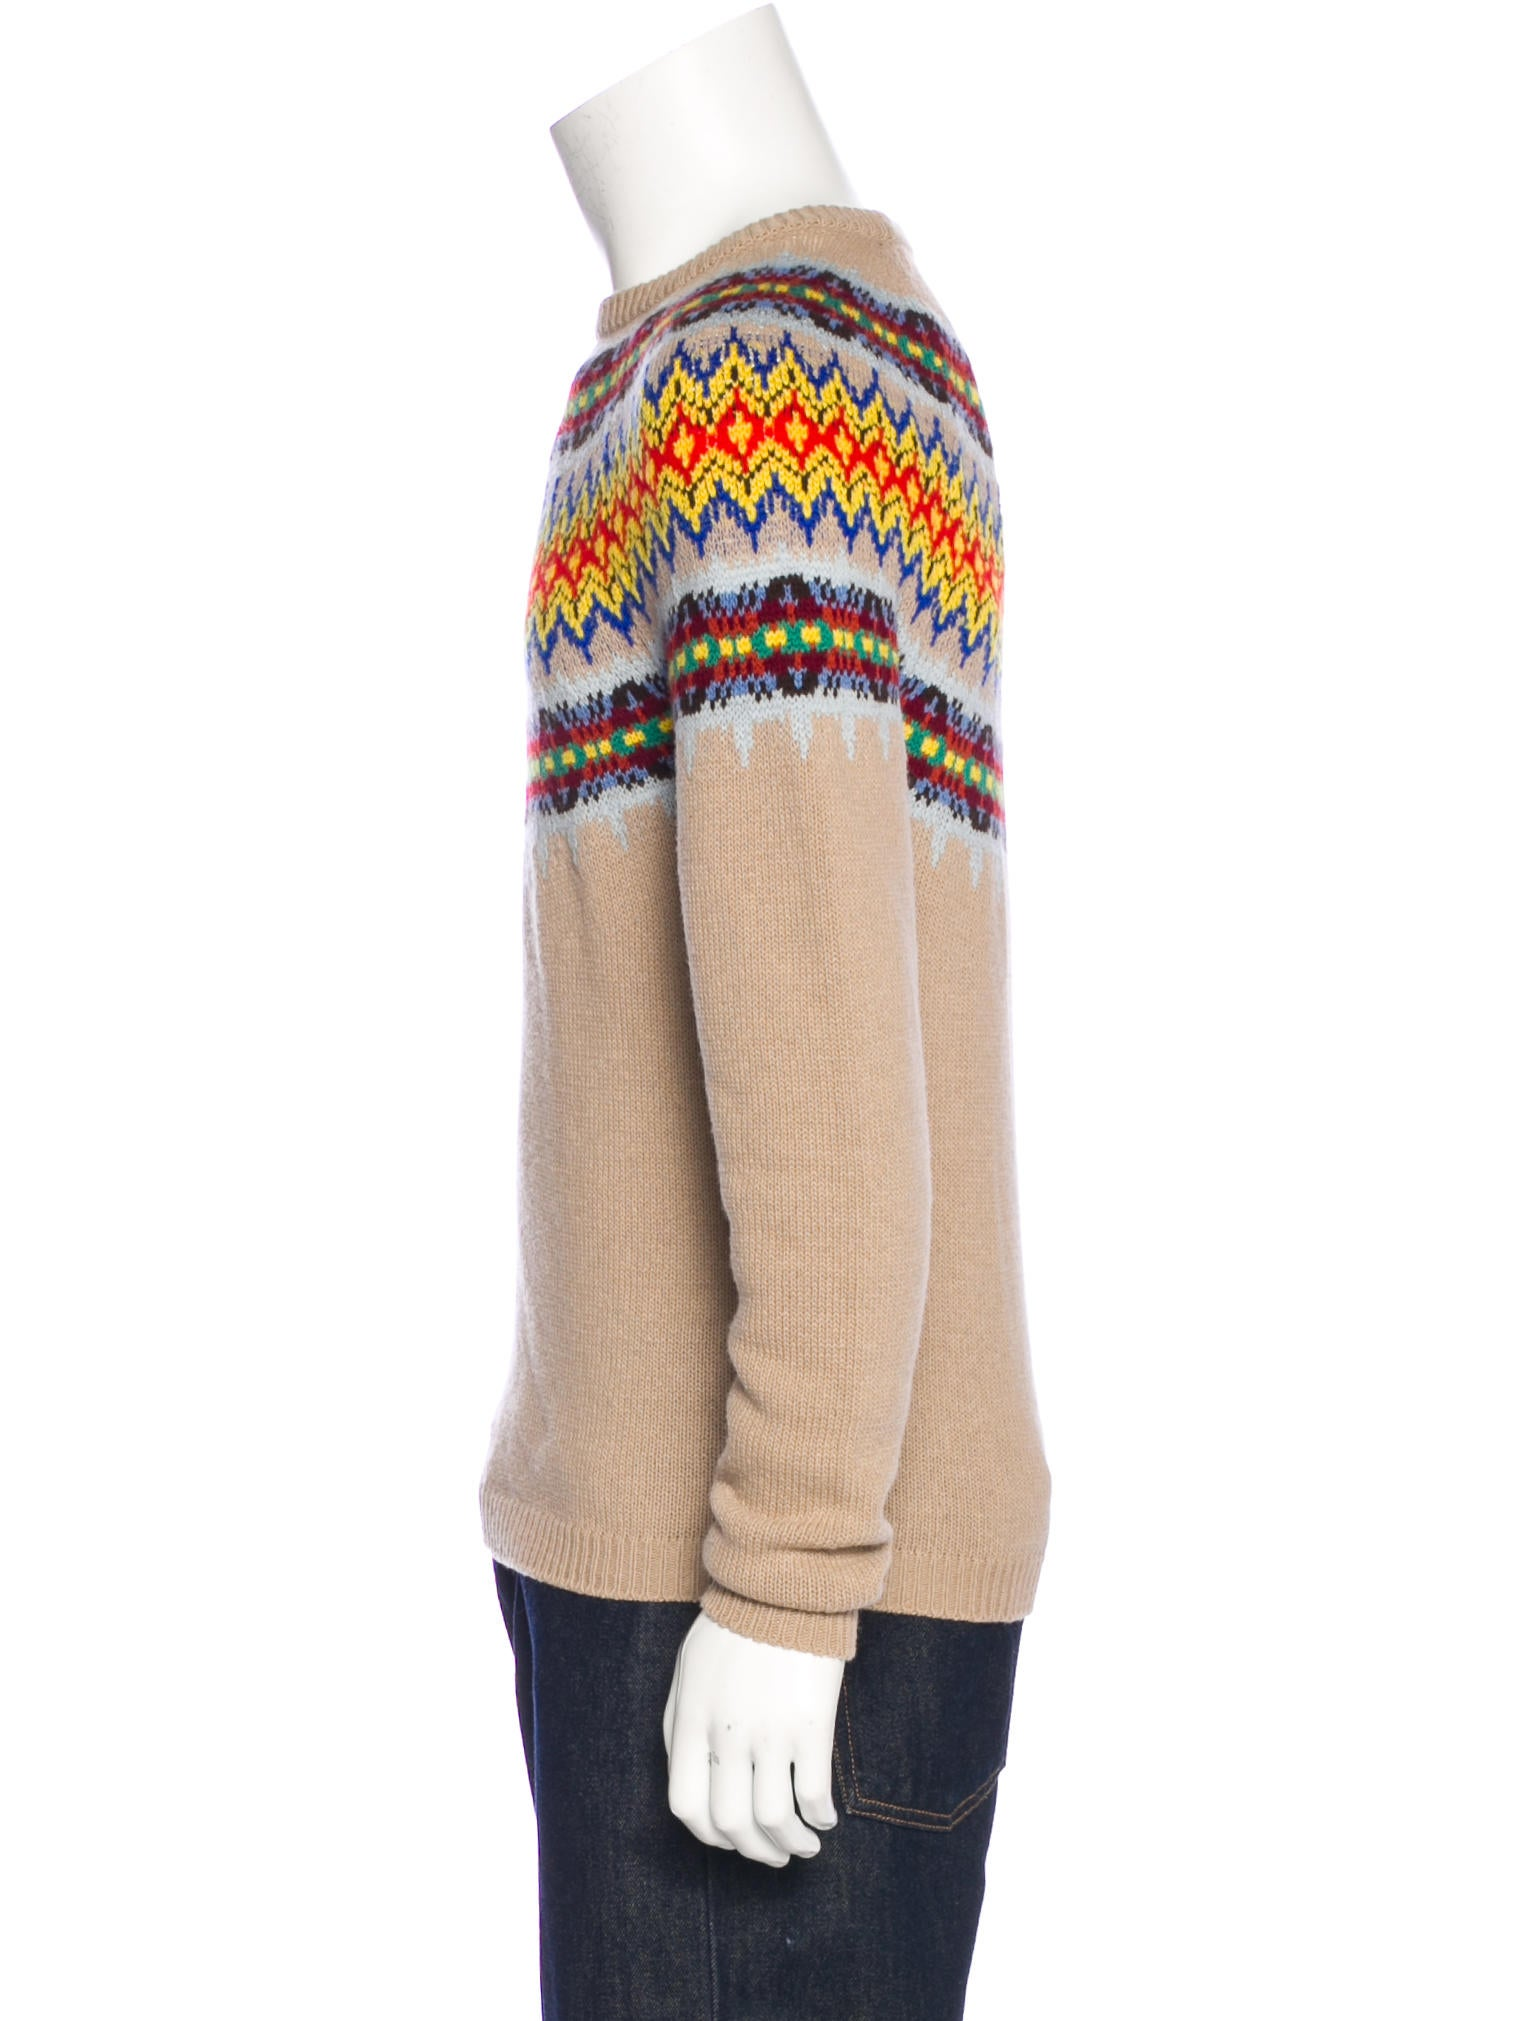 Gucci Fair Isle Wool Sweater - Clothing - GUC157648 | The RealReal